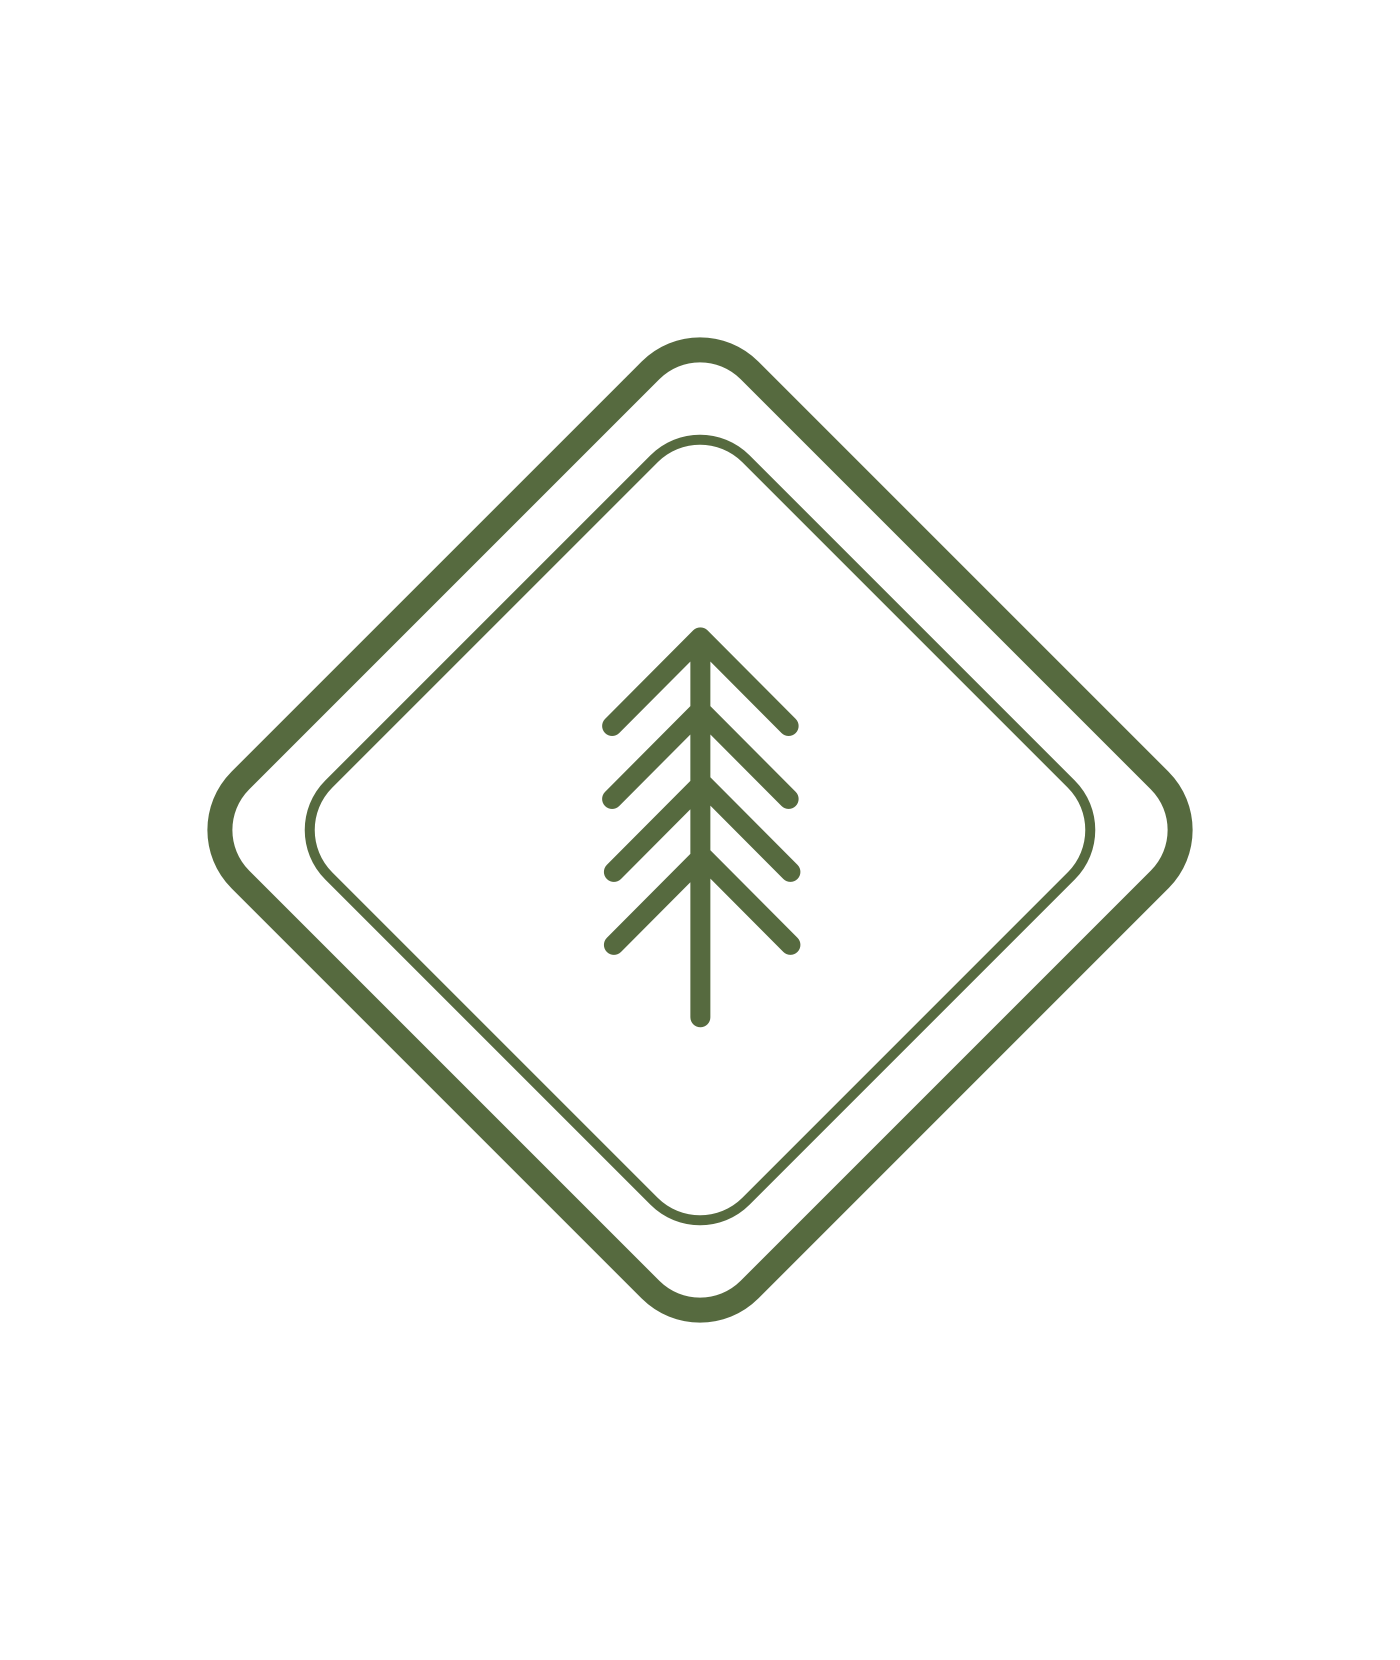 Logo The Canopy Sierra_06.png